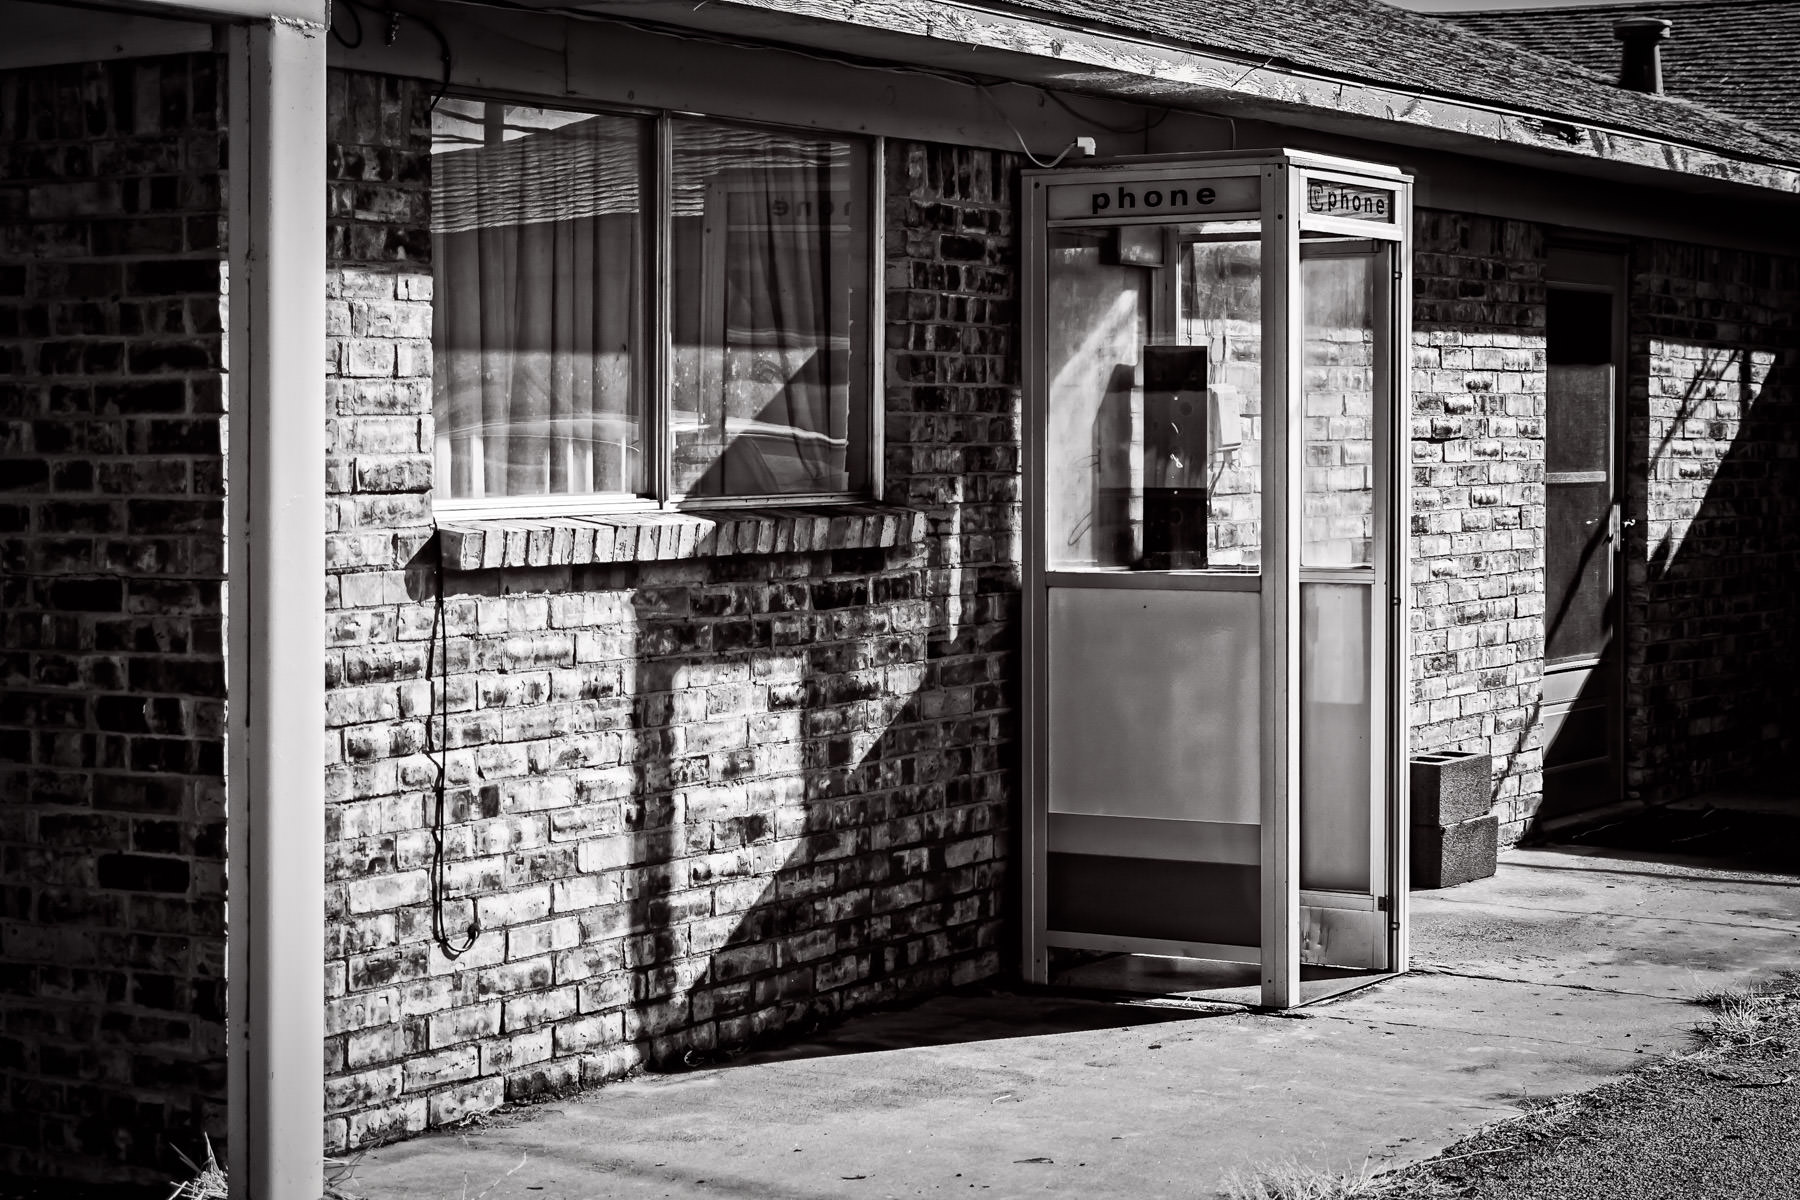 An obsolete phone booth spotted at a motel in the tiny Texas Panhandle town of Adrian.